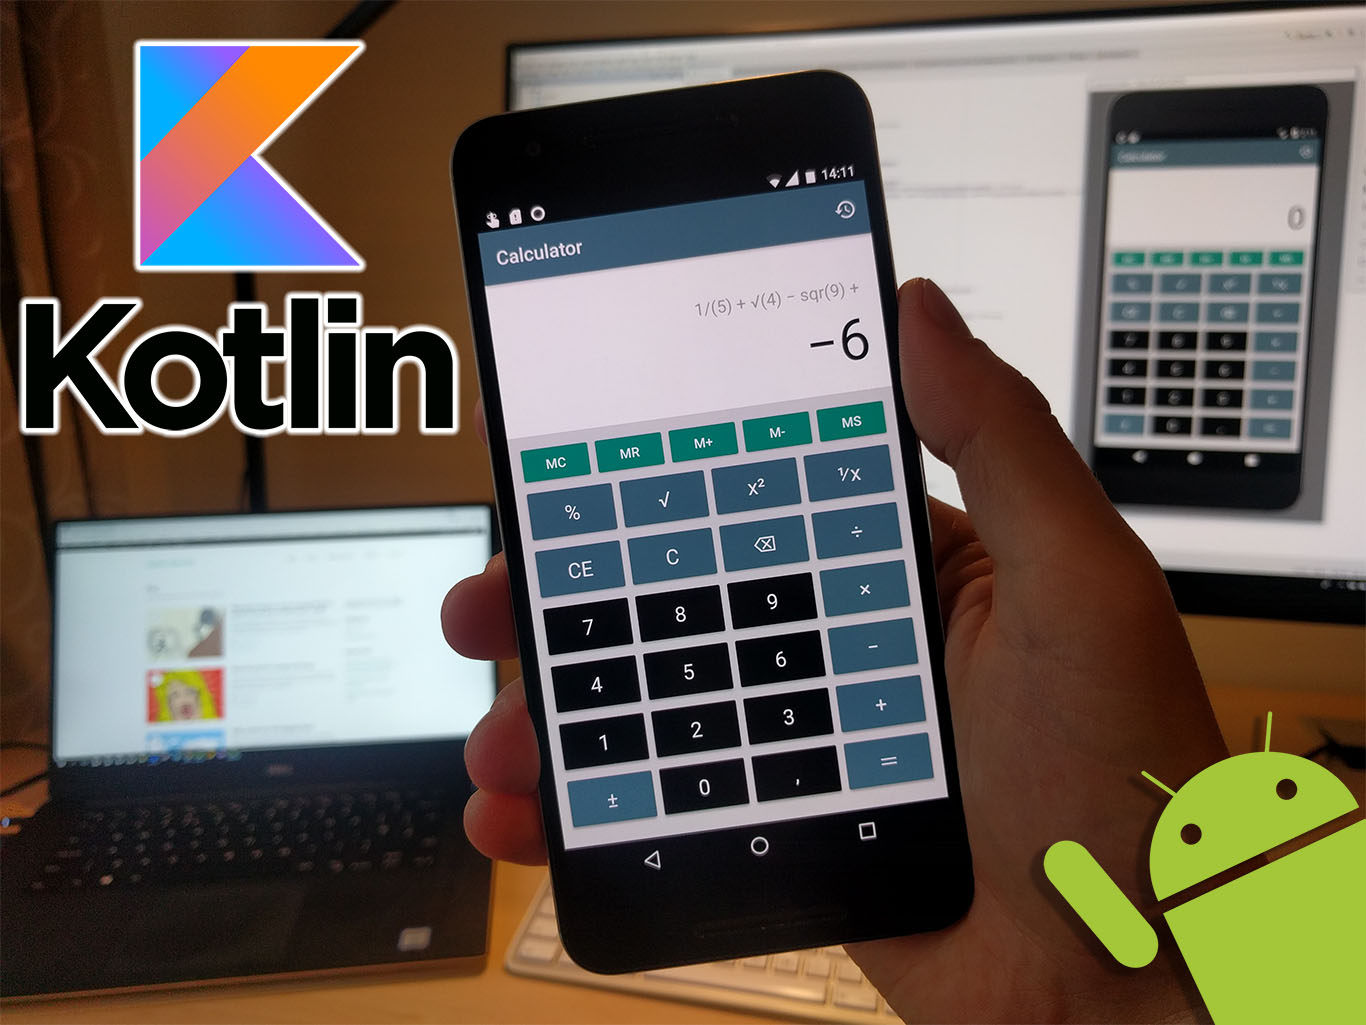 Let's learn Kotlin by building Android calculator app | Andrius